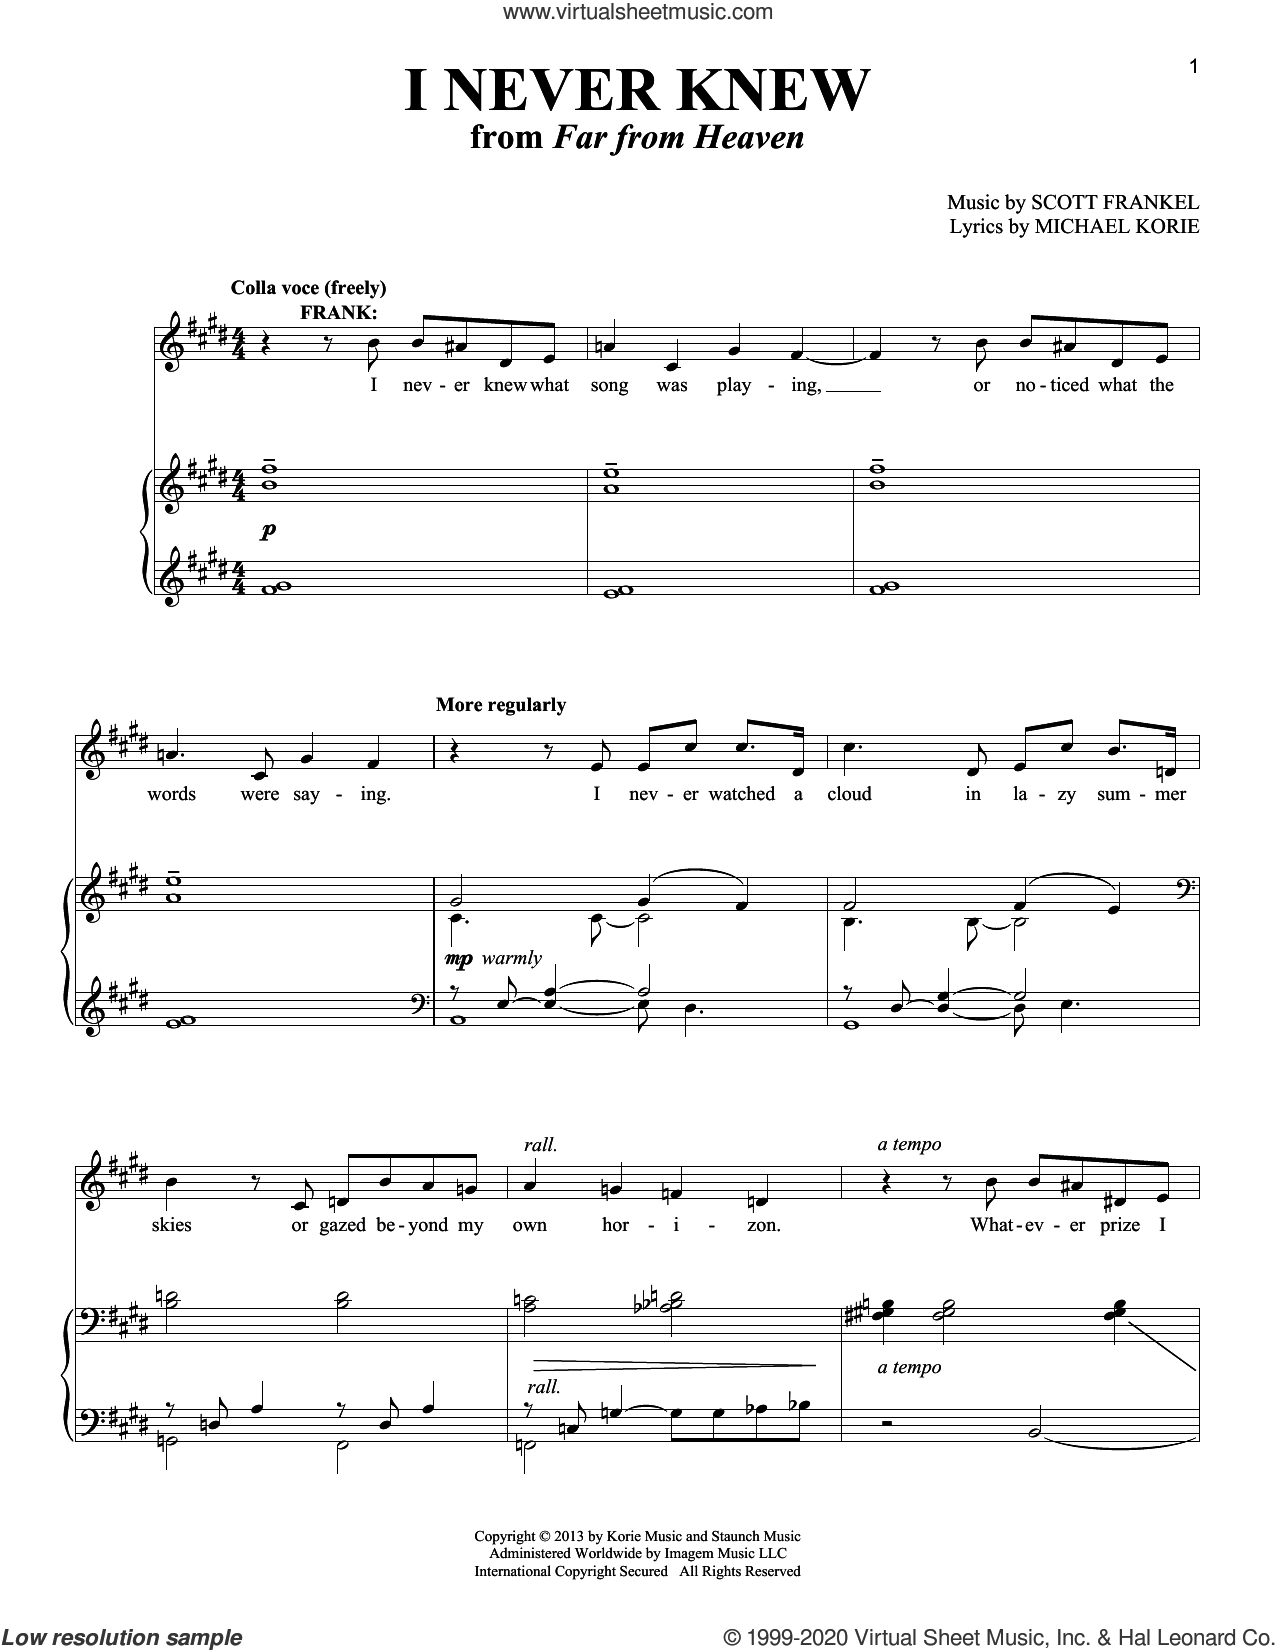 I Never Knew sheet music for voice and piano (Tenor) by Michael Korie, Richard Walters and Scott Frankel, intermediate skill level